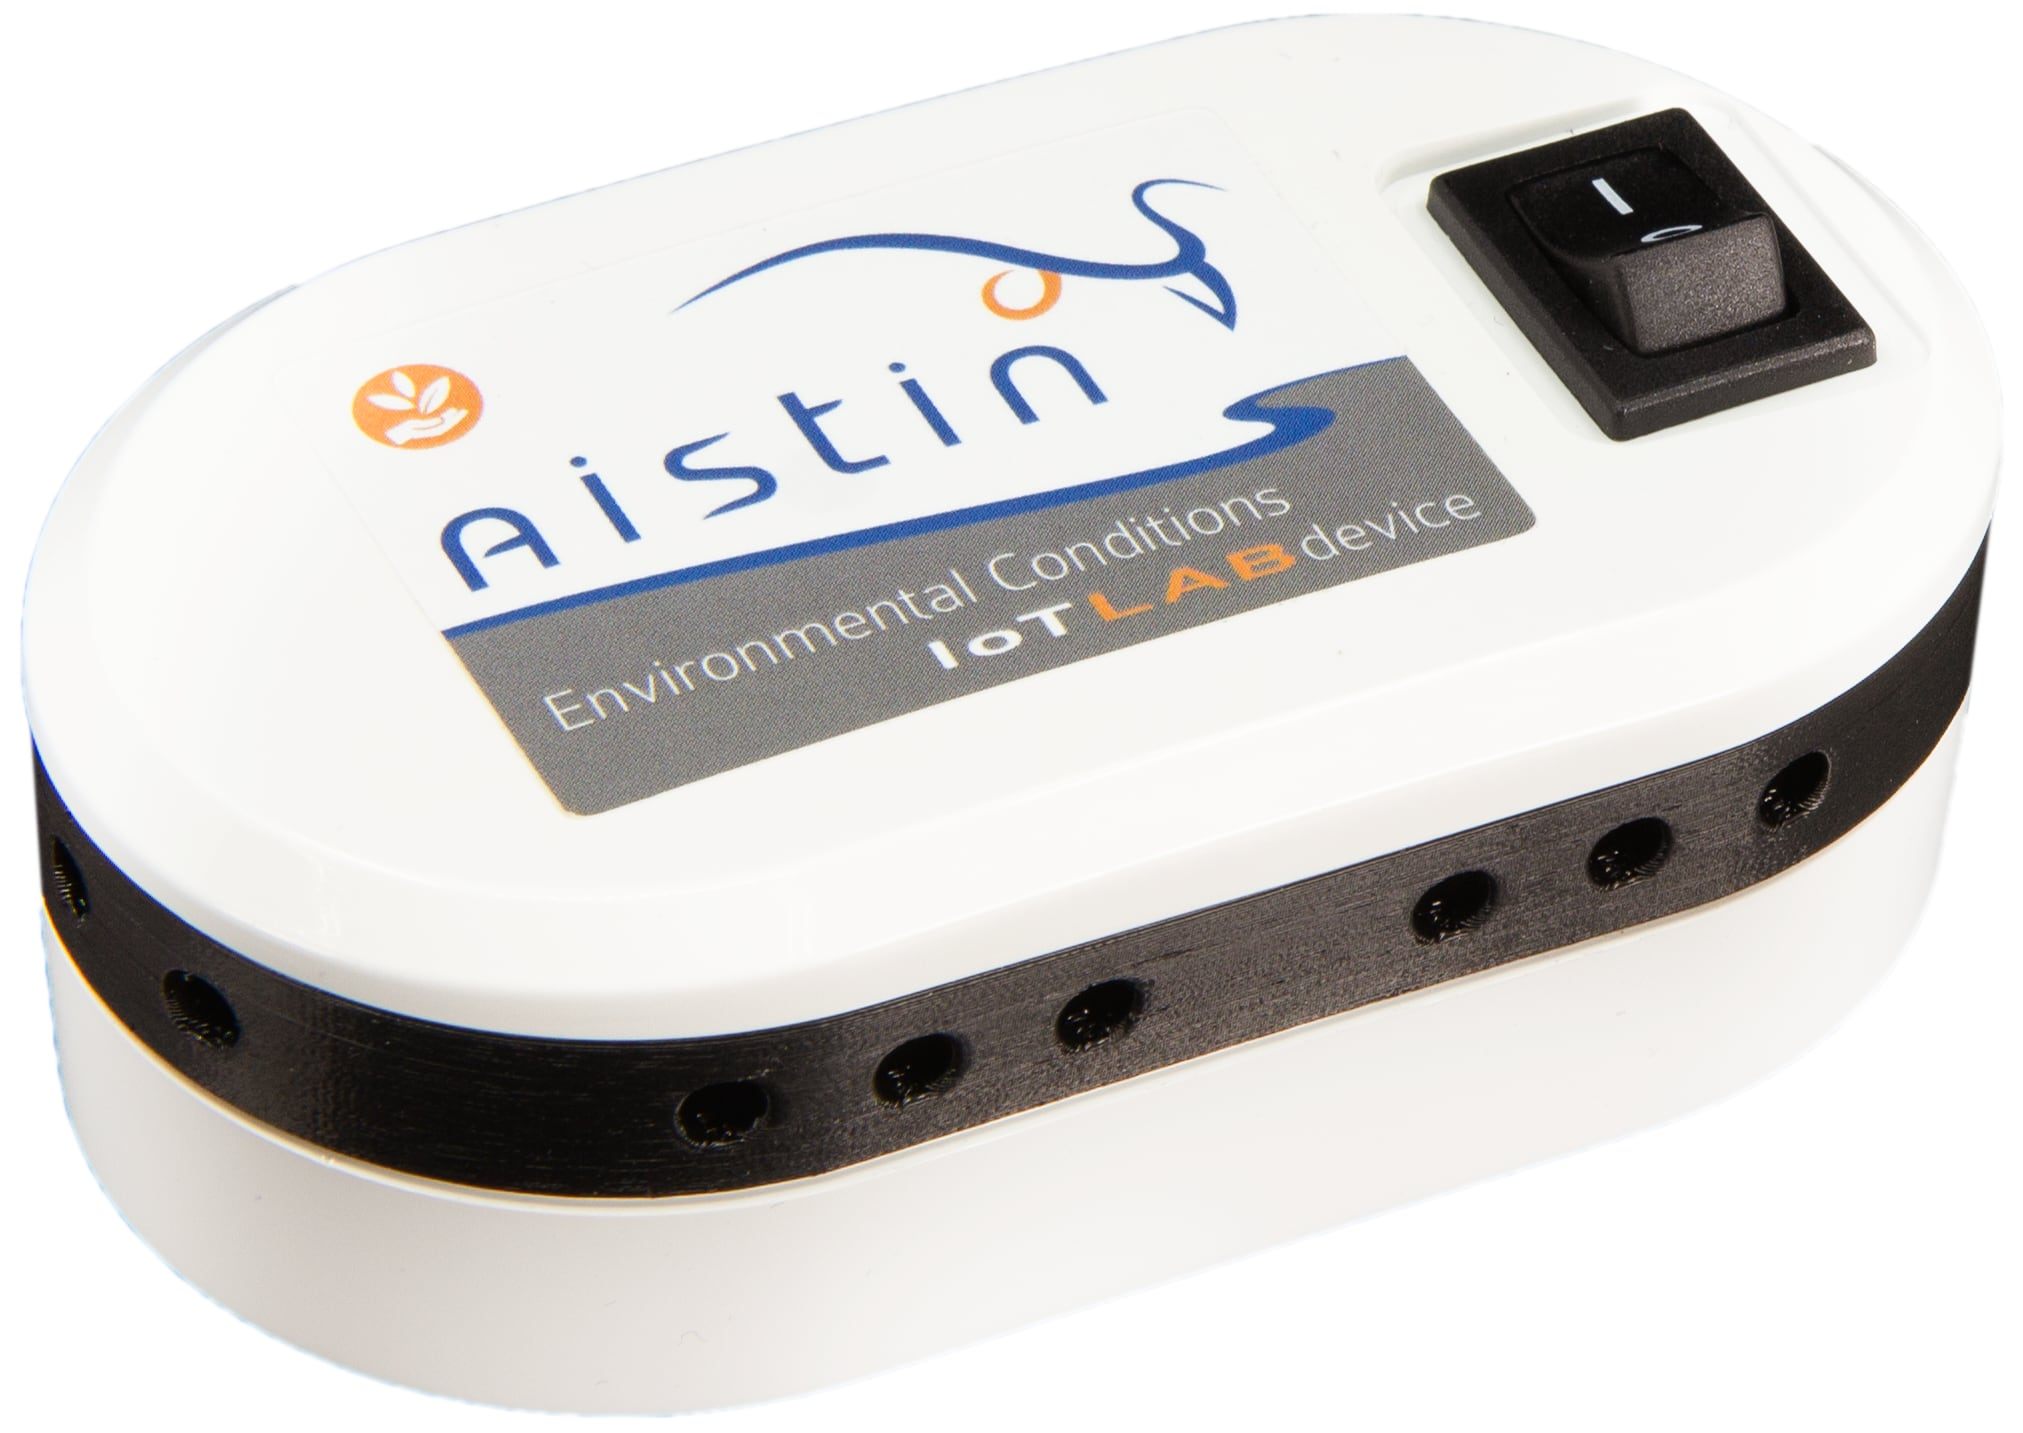 Aistin Environmental Conditions Device